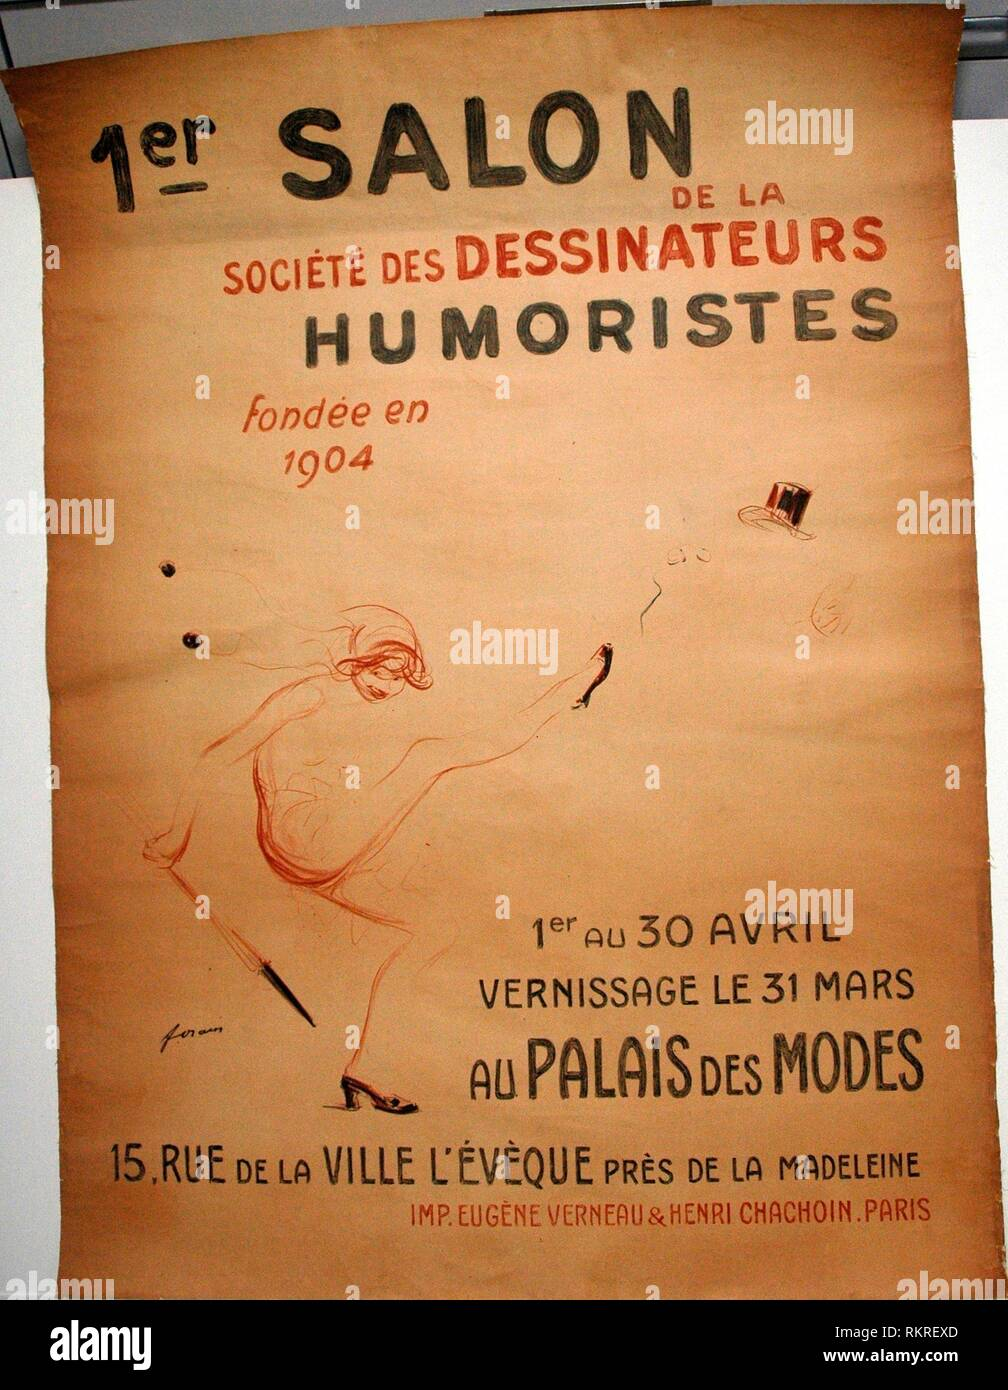 1st Exhibition of the Humorists - 1911 - Jean Louis Forain (French, 1852-1931) Printed by Eugene Verneau & Henri Chachoin - Artist: Jean Louis - Stock Image